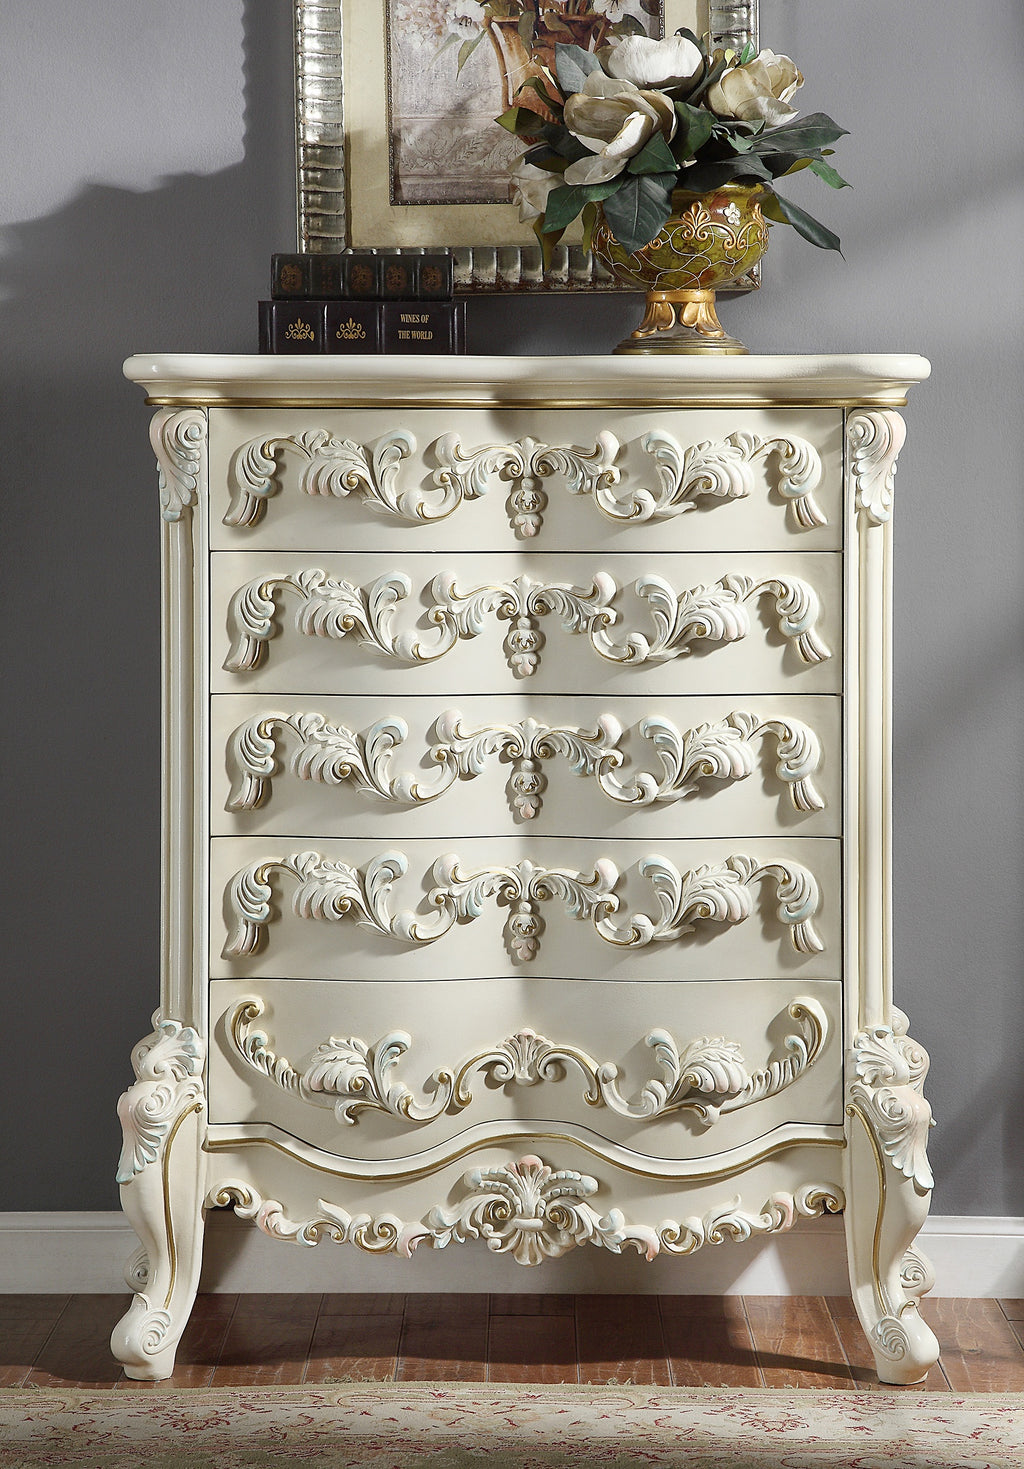 Chest in White Gloss Finish CHE8089 European Traditional Victorian